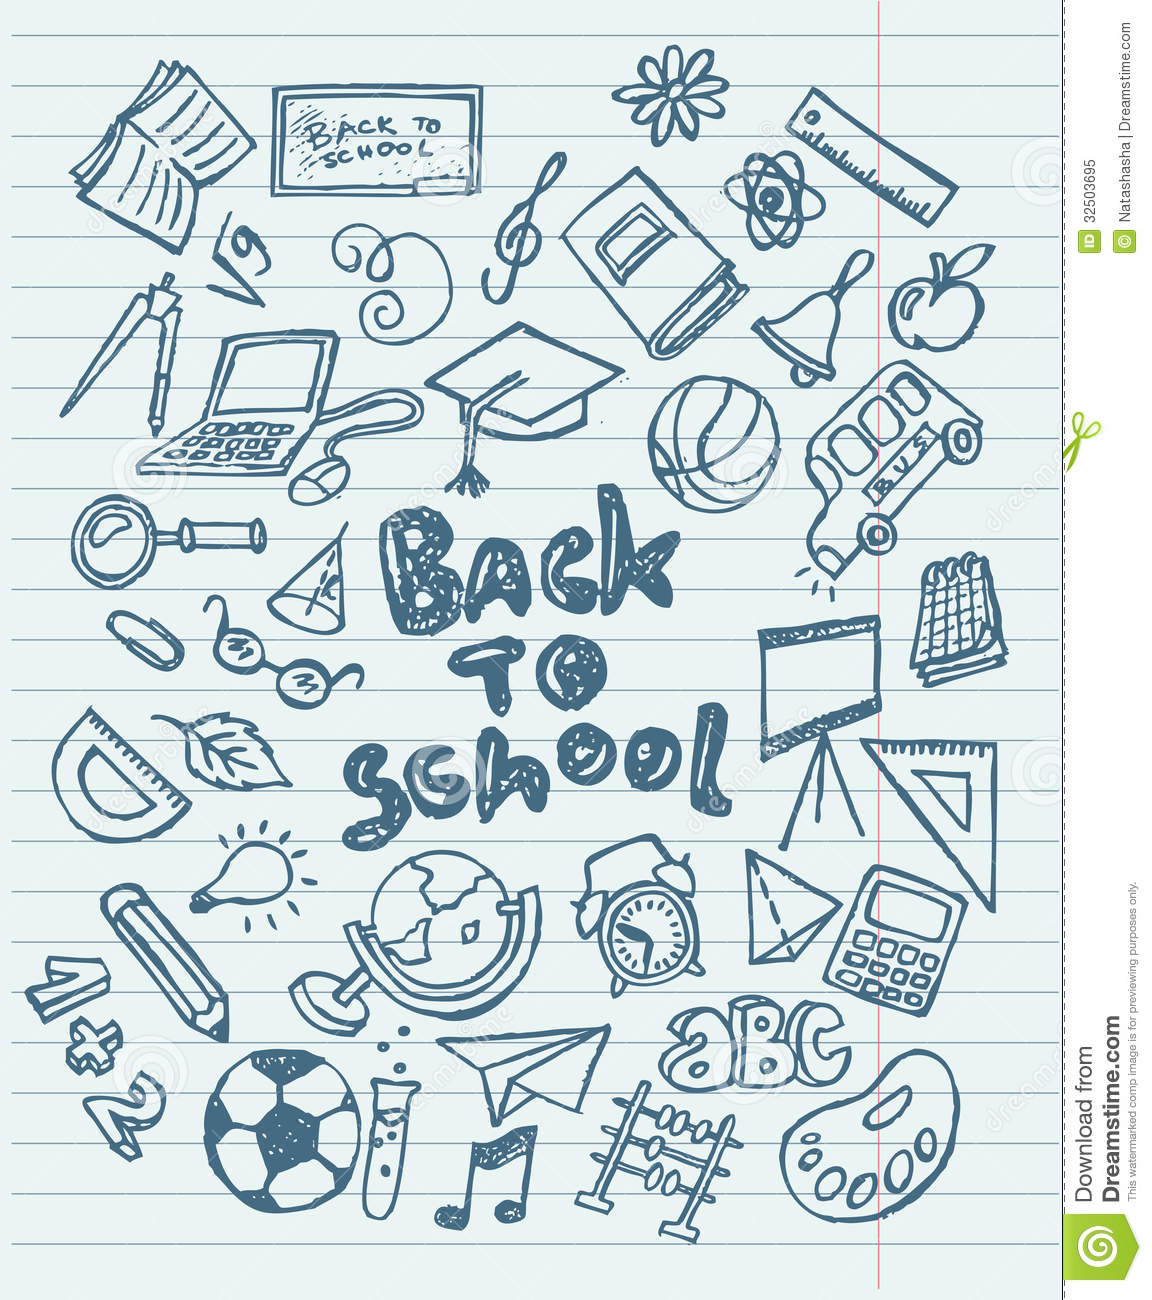 Back To School Sketchy Doodles Stock Vector - Image: 32503695